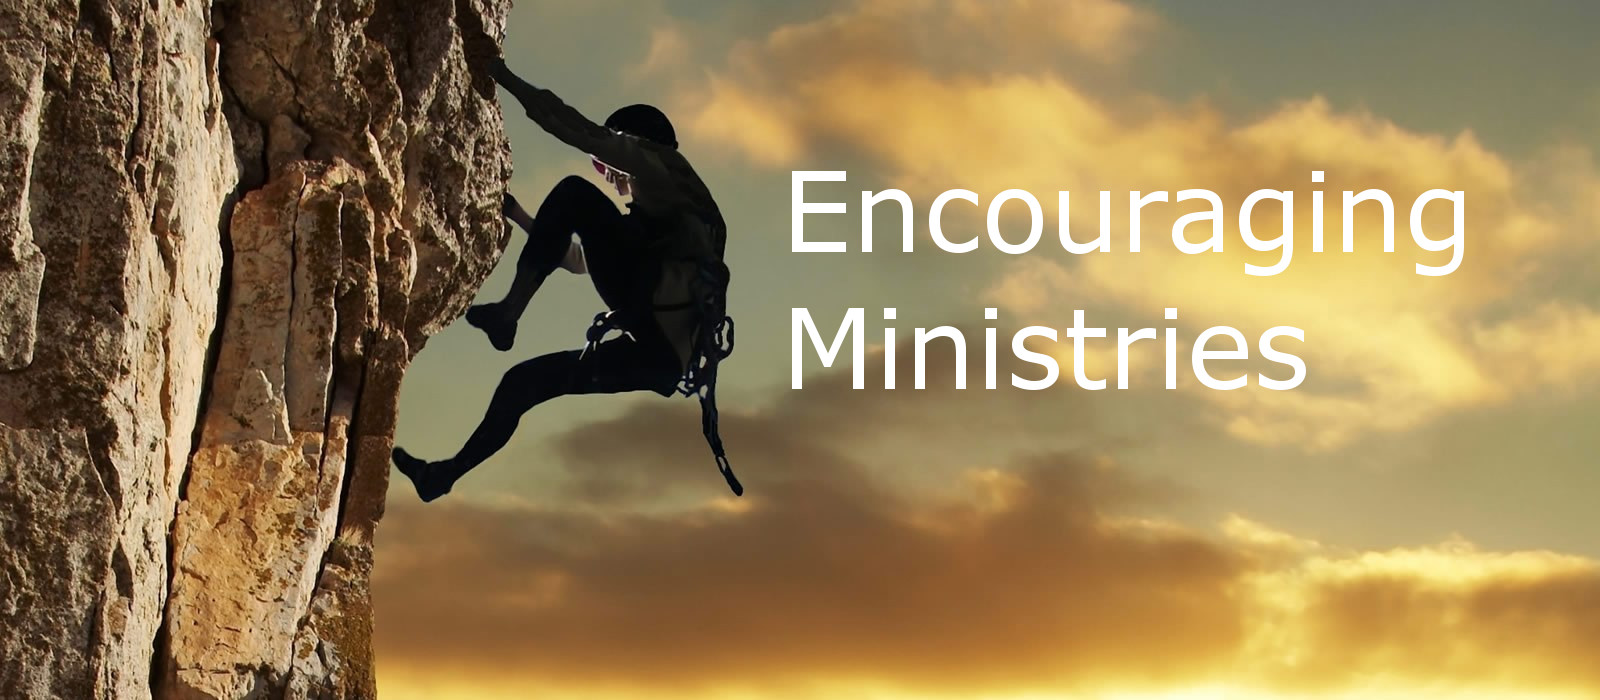 Encouraging Ministries